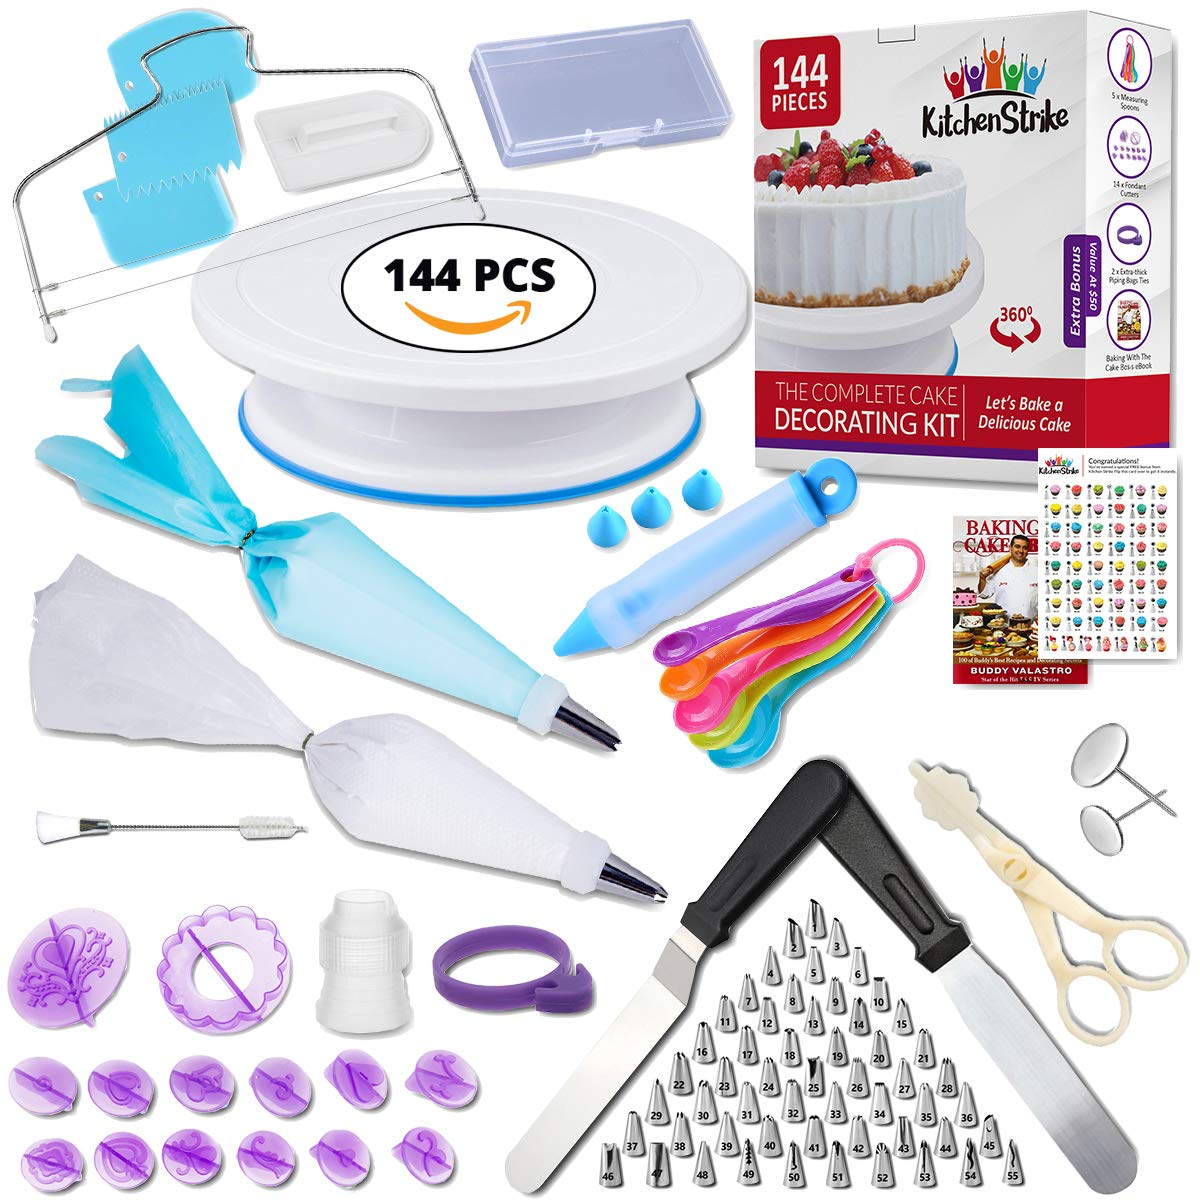 Kitchen Strike Cake Decorating Kit - The Complete 144 Pieces Set With Extra Bonus Accessories Of Fondant Tools, Spoons, Piping Bag Ties and Book - Smooth Spinner Turntable With Non-slip Silicone Base by Kitchen Strike